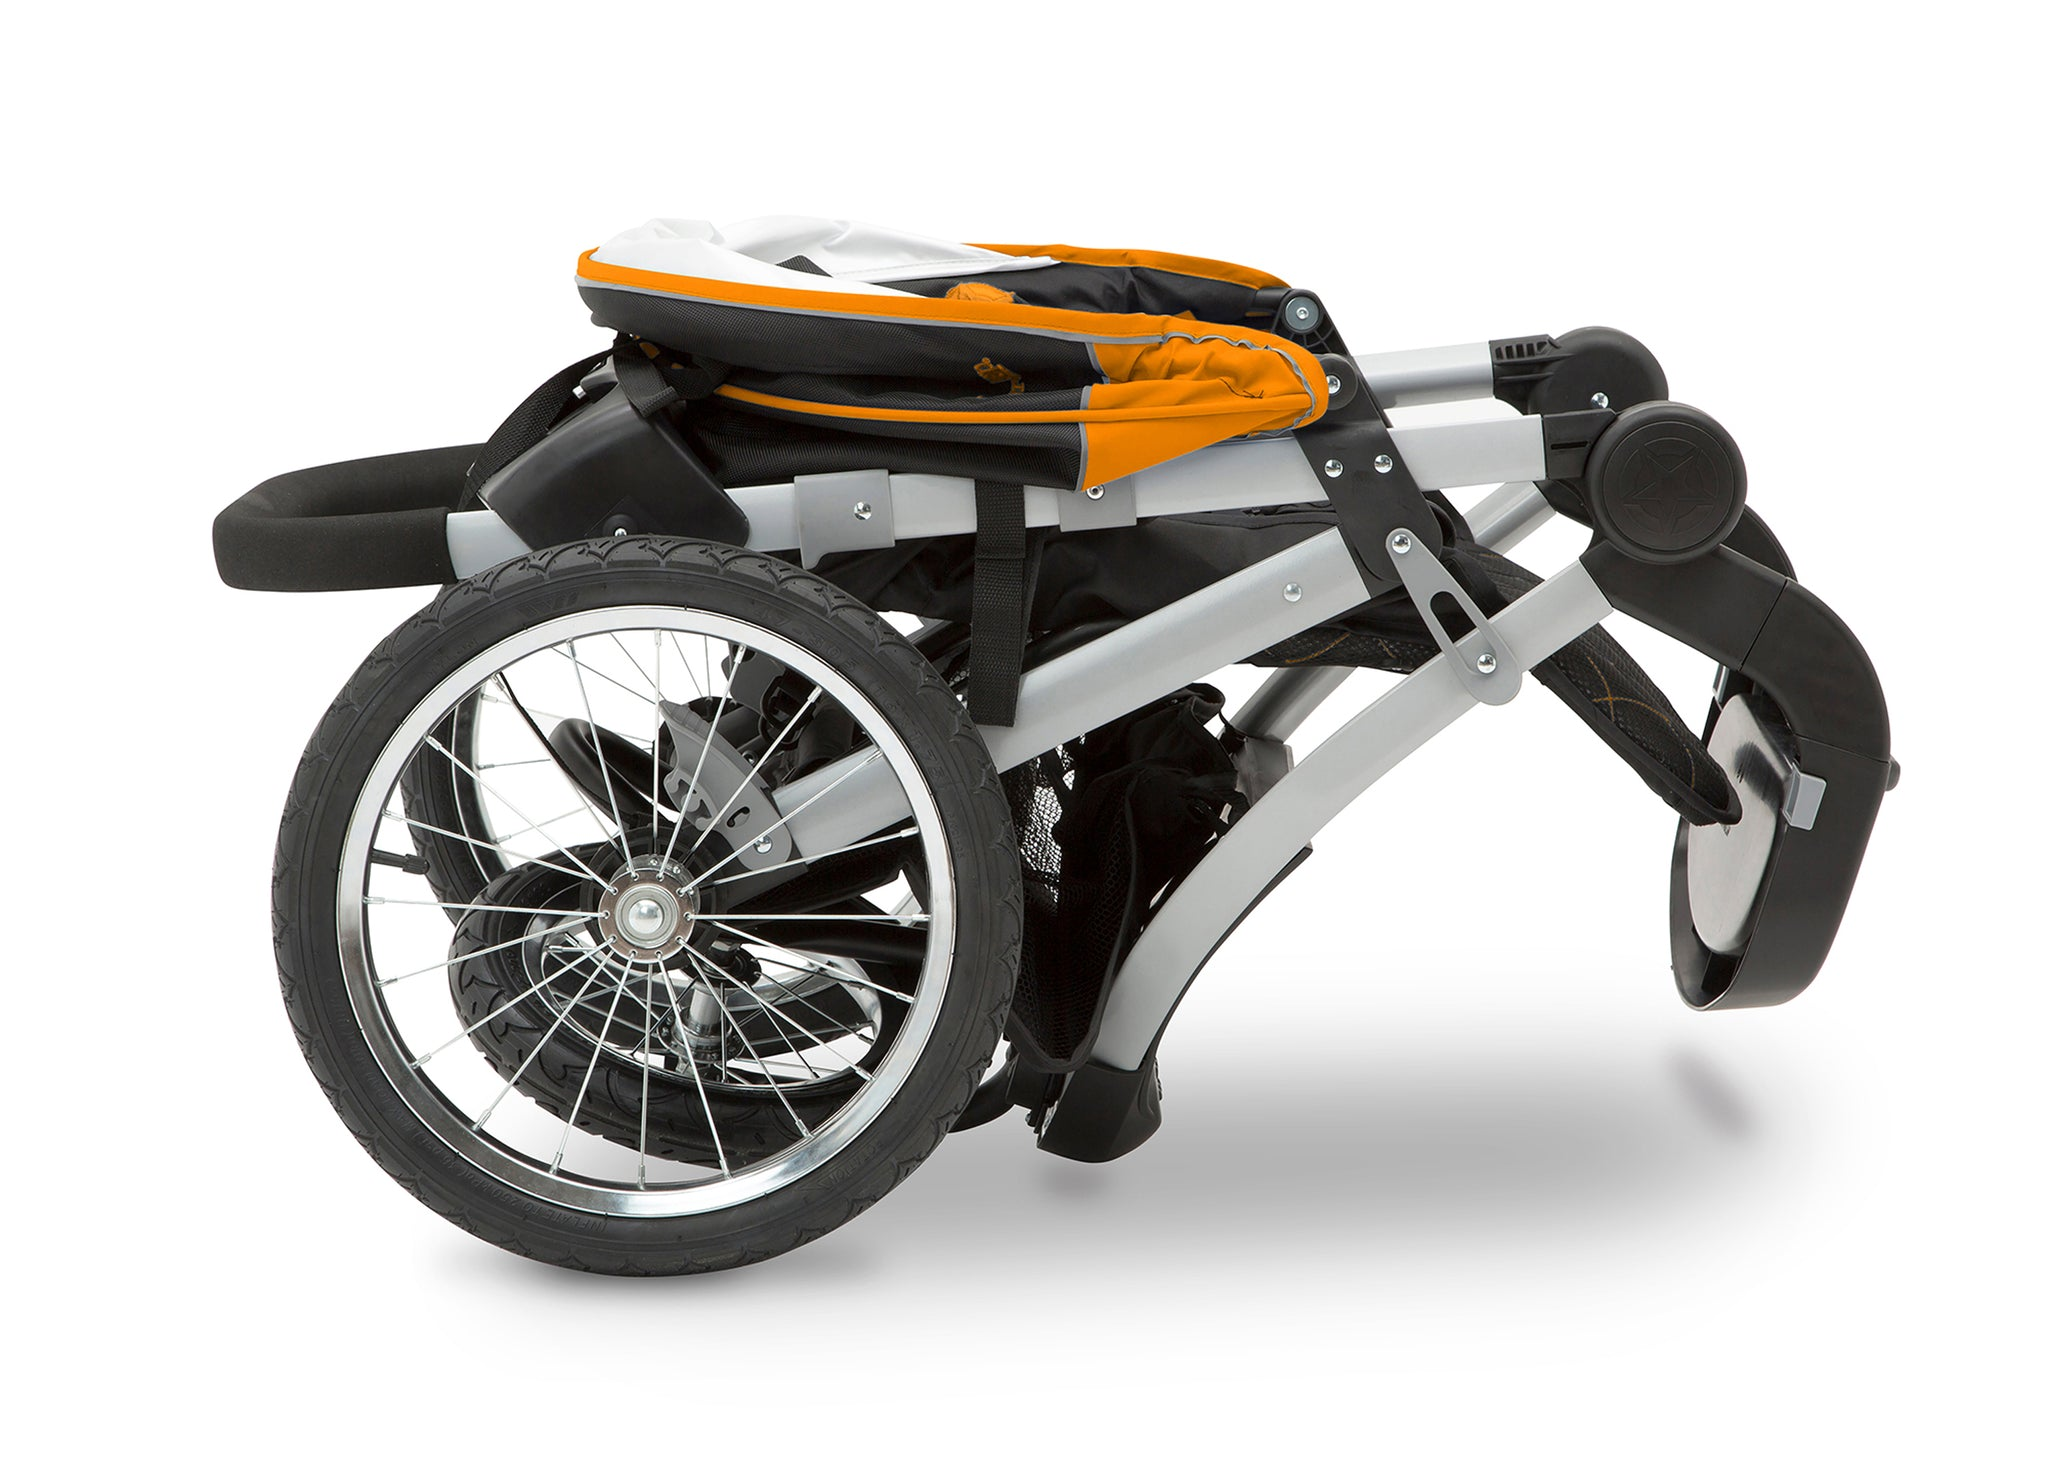 Jeep Unlimited Range Jogger by Delta Children, Trek Orange (835), can be folded quickly and compactly